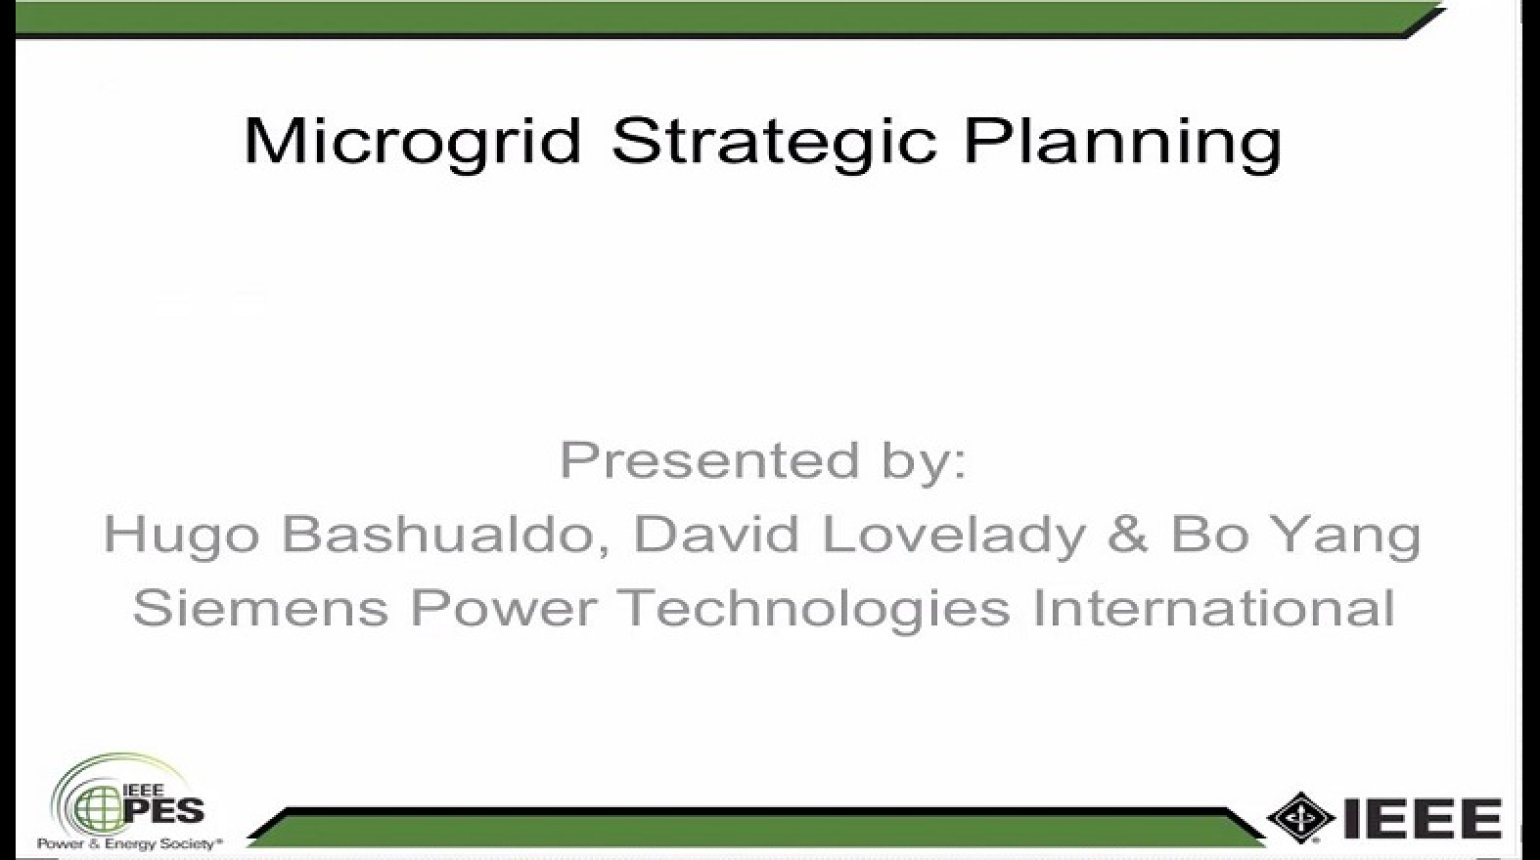 Strategic Planning for Microgrids - Strategies and Tools